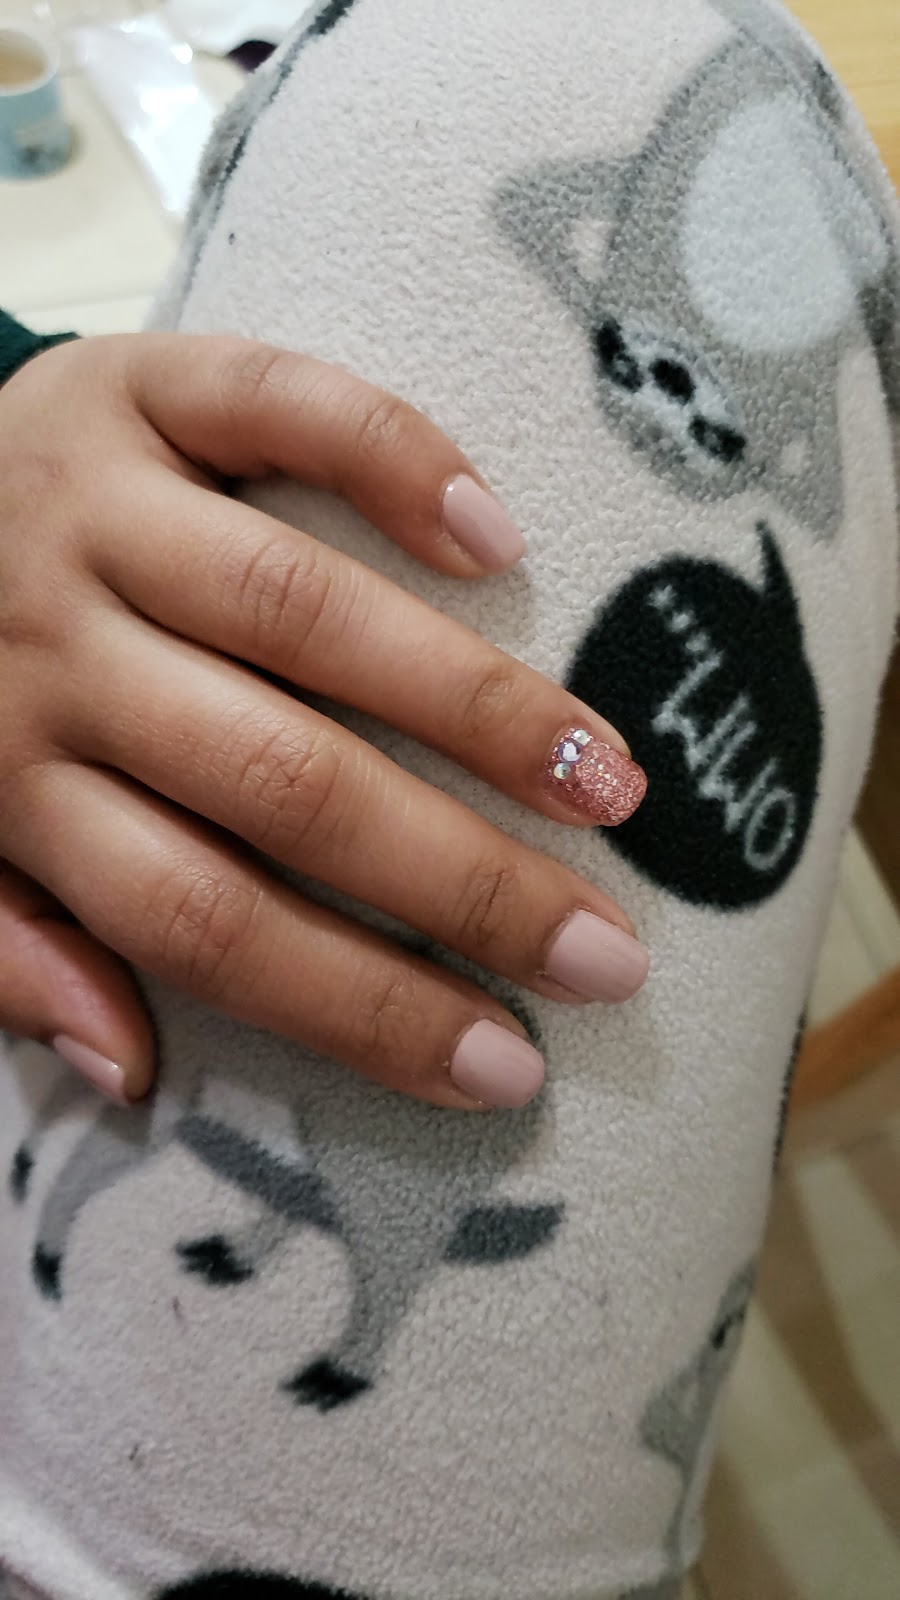 Sunrise Nails | hair care | 7700 Hurontario St #312a, Brampton, ON L6Y 4M3, Canada | 9054506245 OR +1 905-450-6245